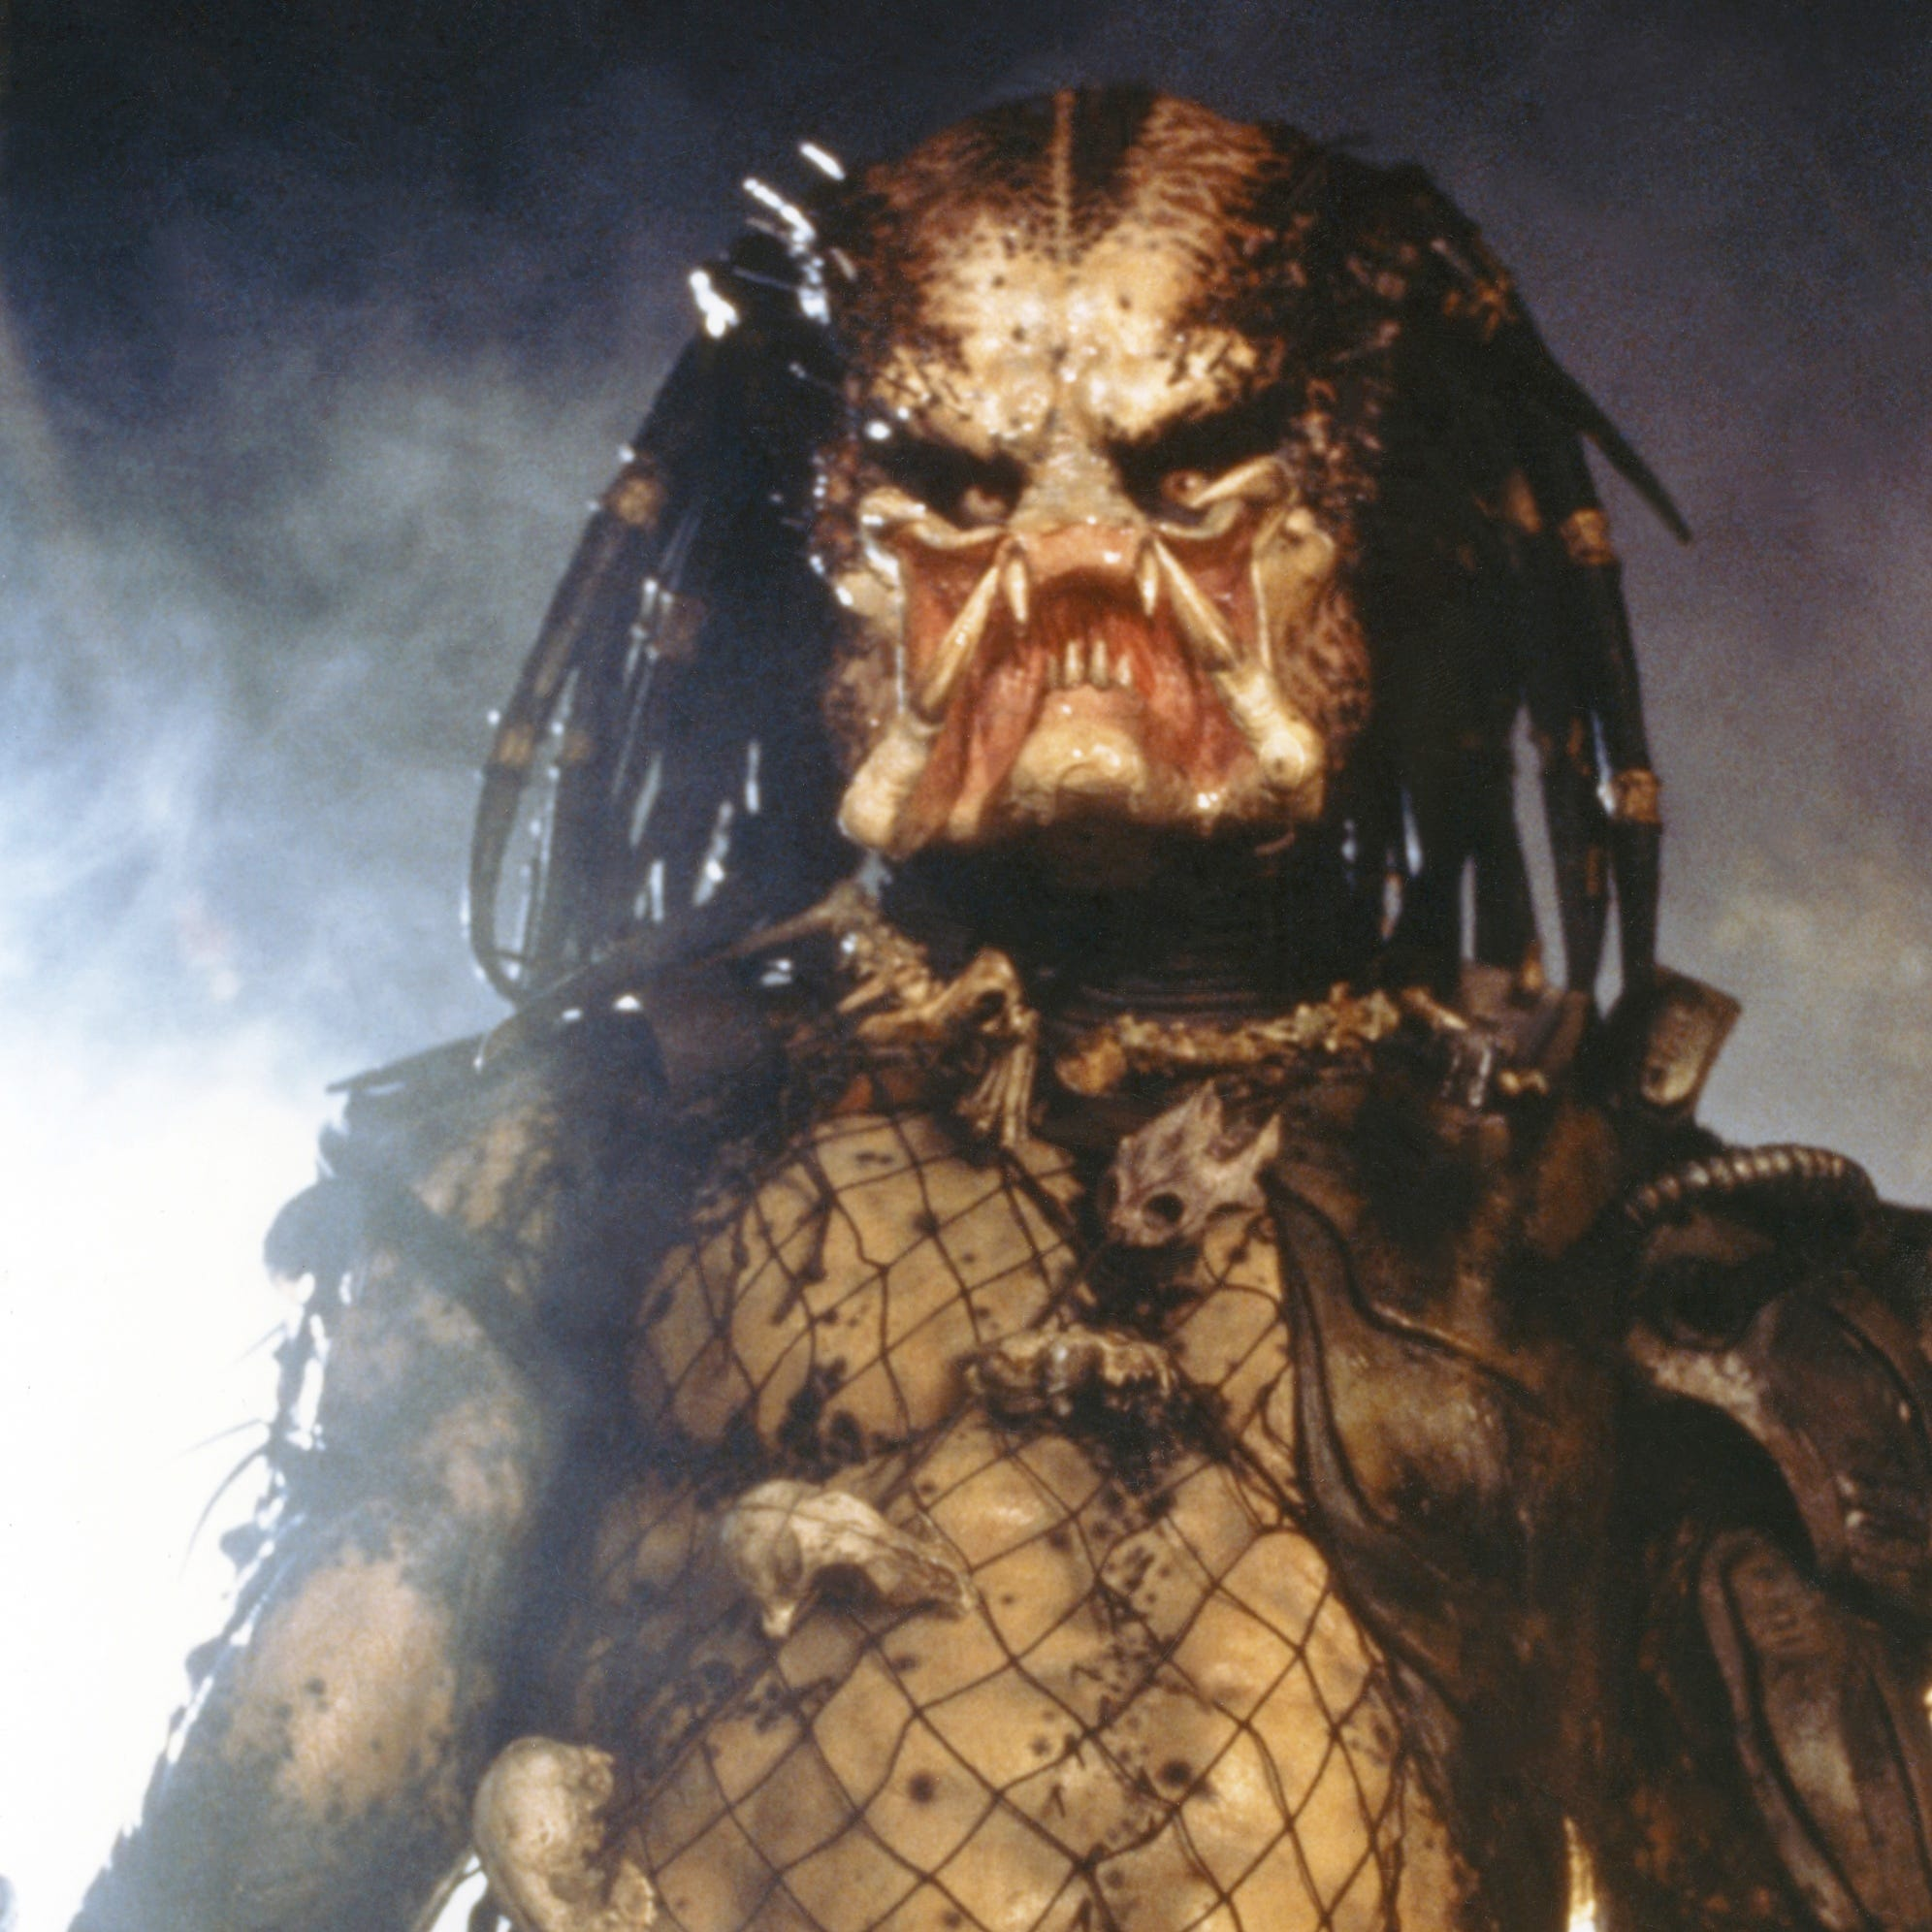 The Predator (Kevin Peter Hall) from the original 1987 action film.